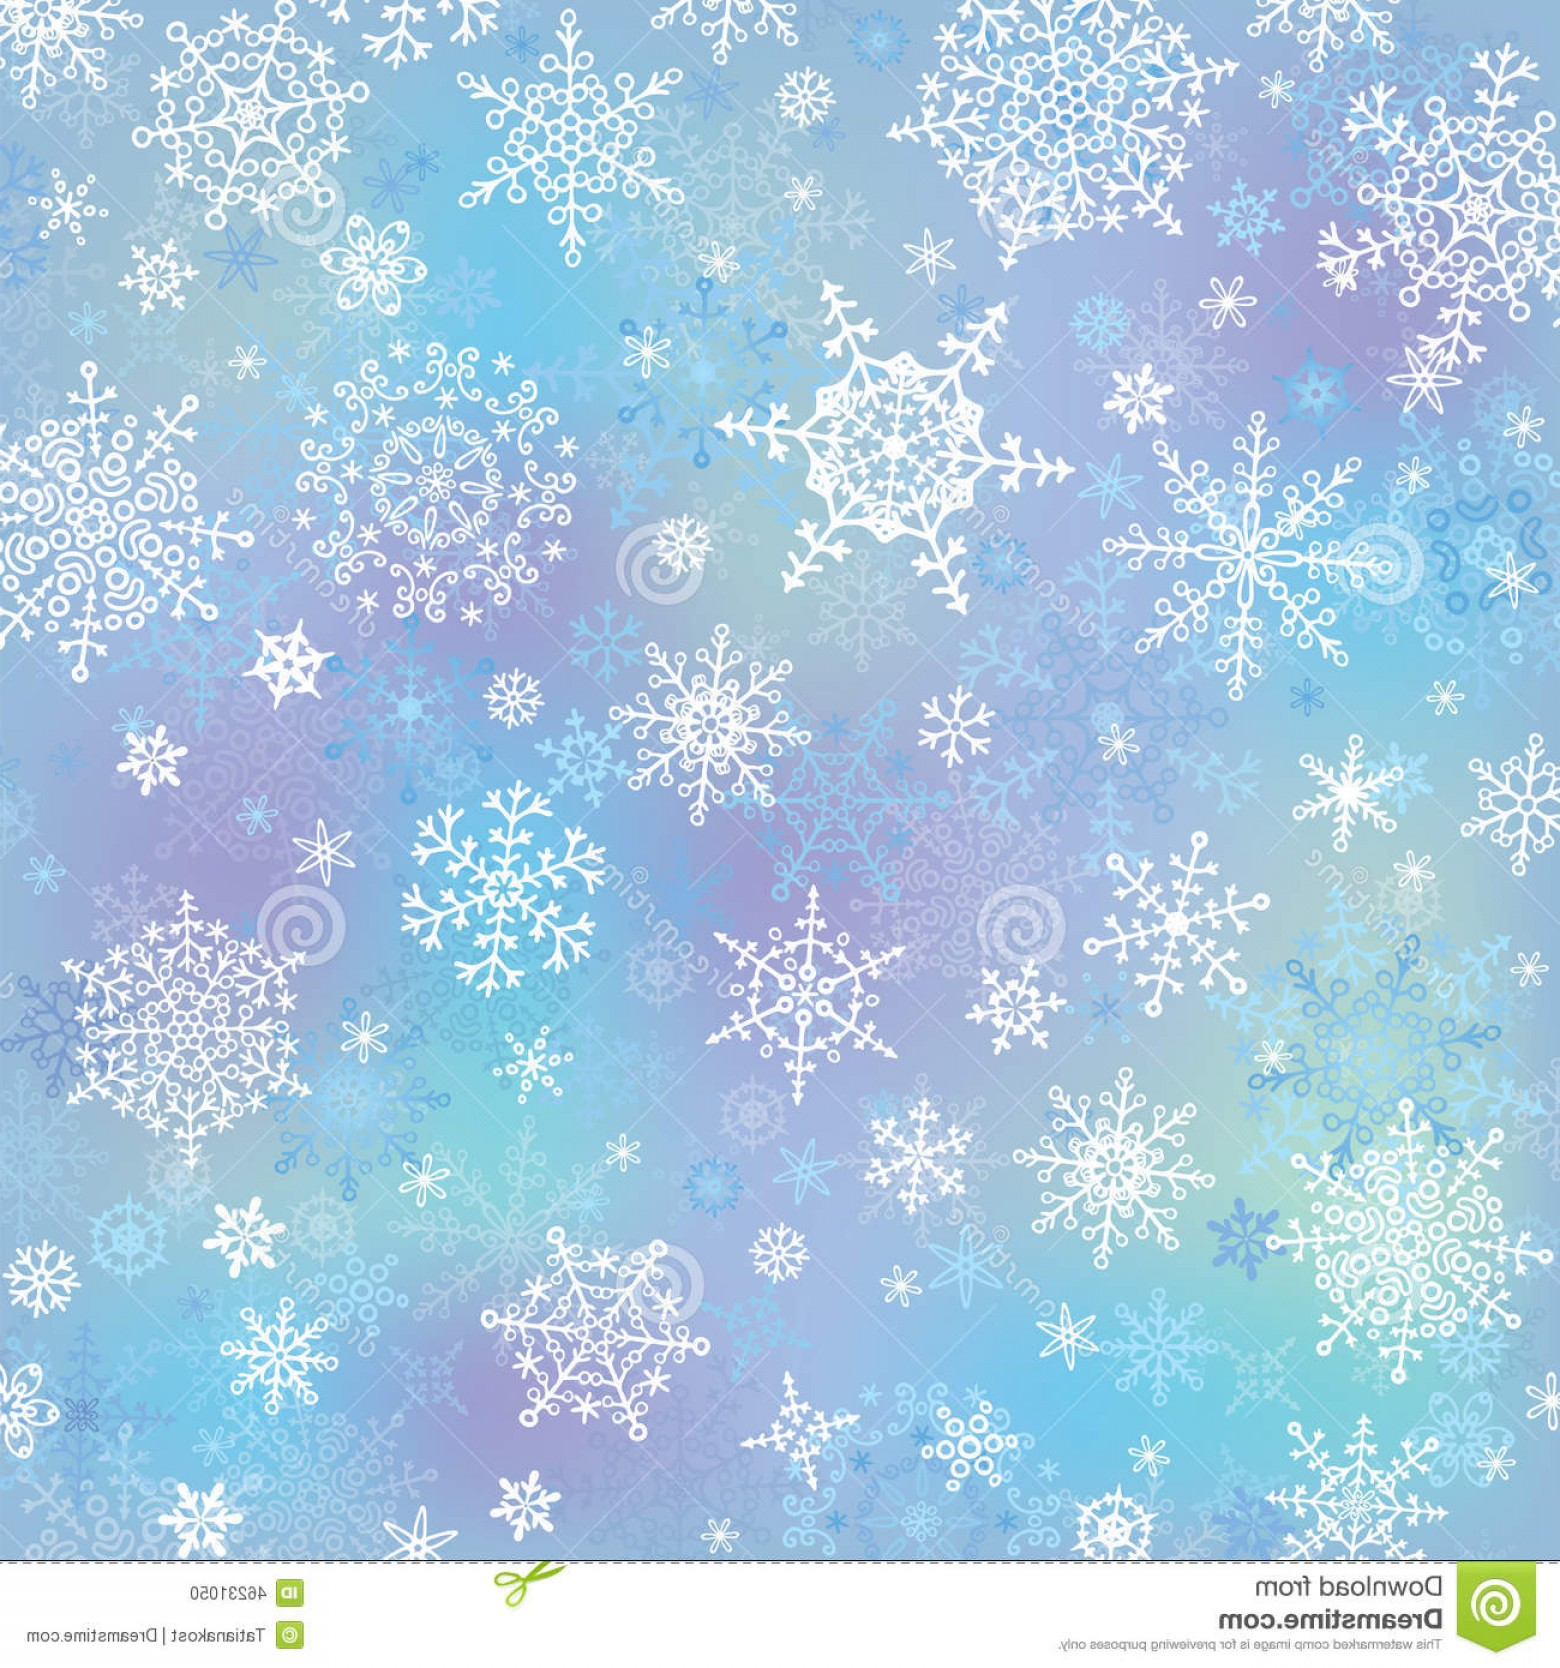 Vector Snowflake Wreath: Stock Photo Snowflake Blur Background Winter Vector Christmas Wreath Blue Backdrop Cool Colors Image